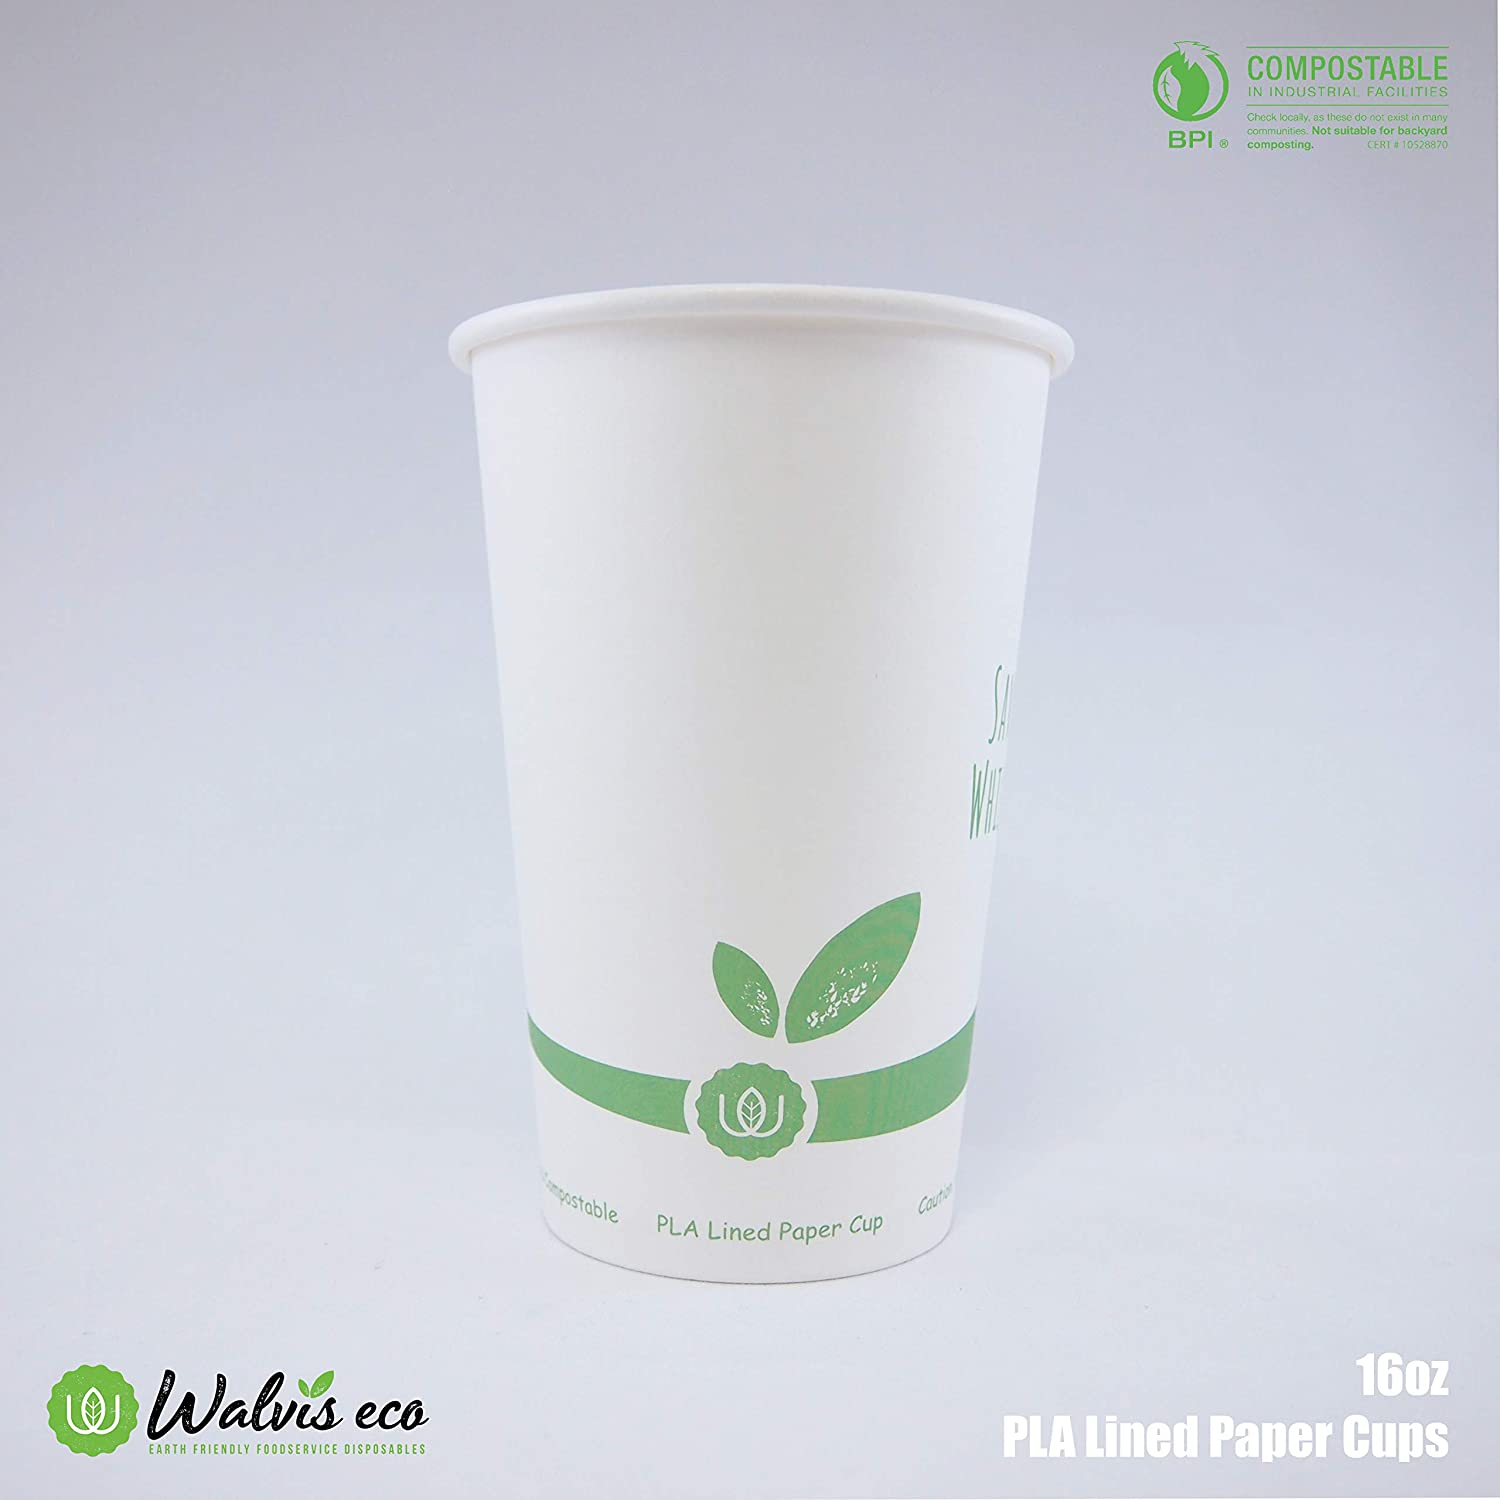 80172badc43 Amazon.com: [100 Cups] Eco-Friendly Compostable PLA-Lined 16oz Paper Cups by  Walvis Eco (Cups ONLY): Kitchen & Dining